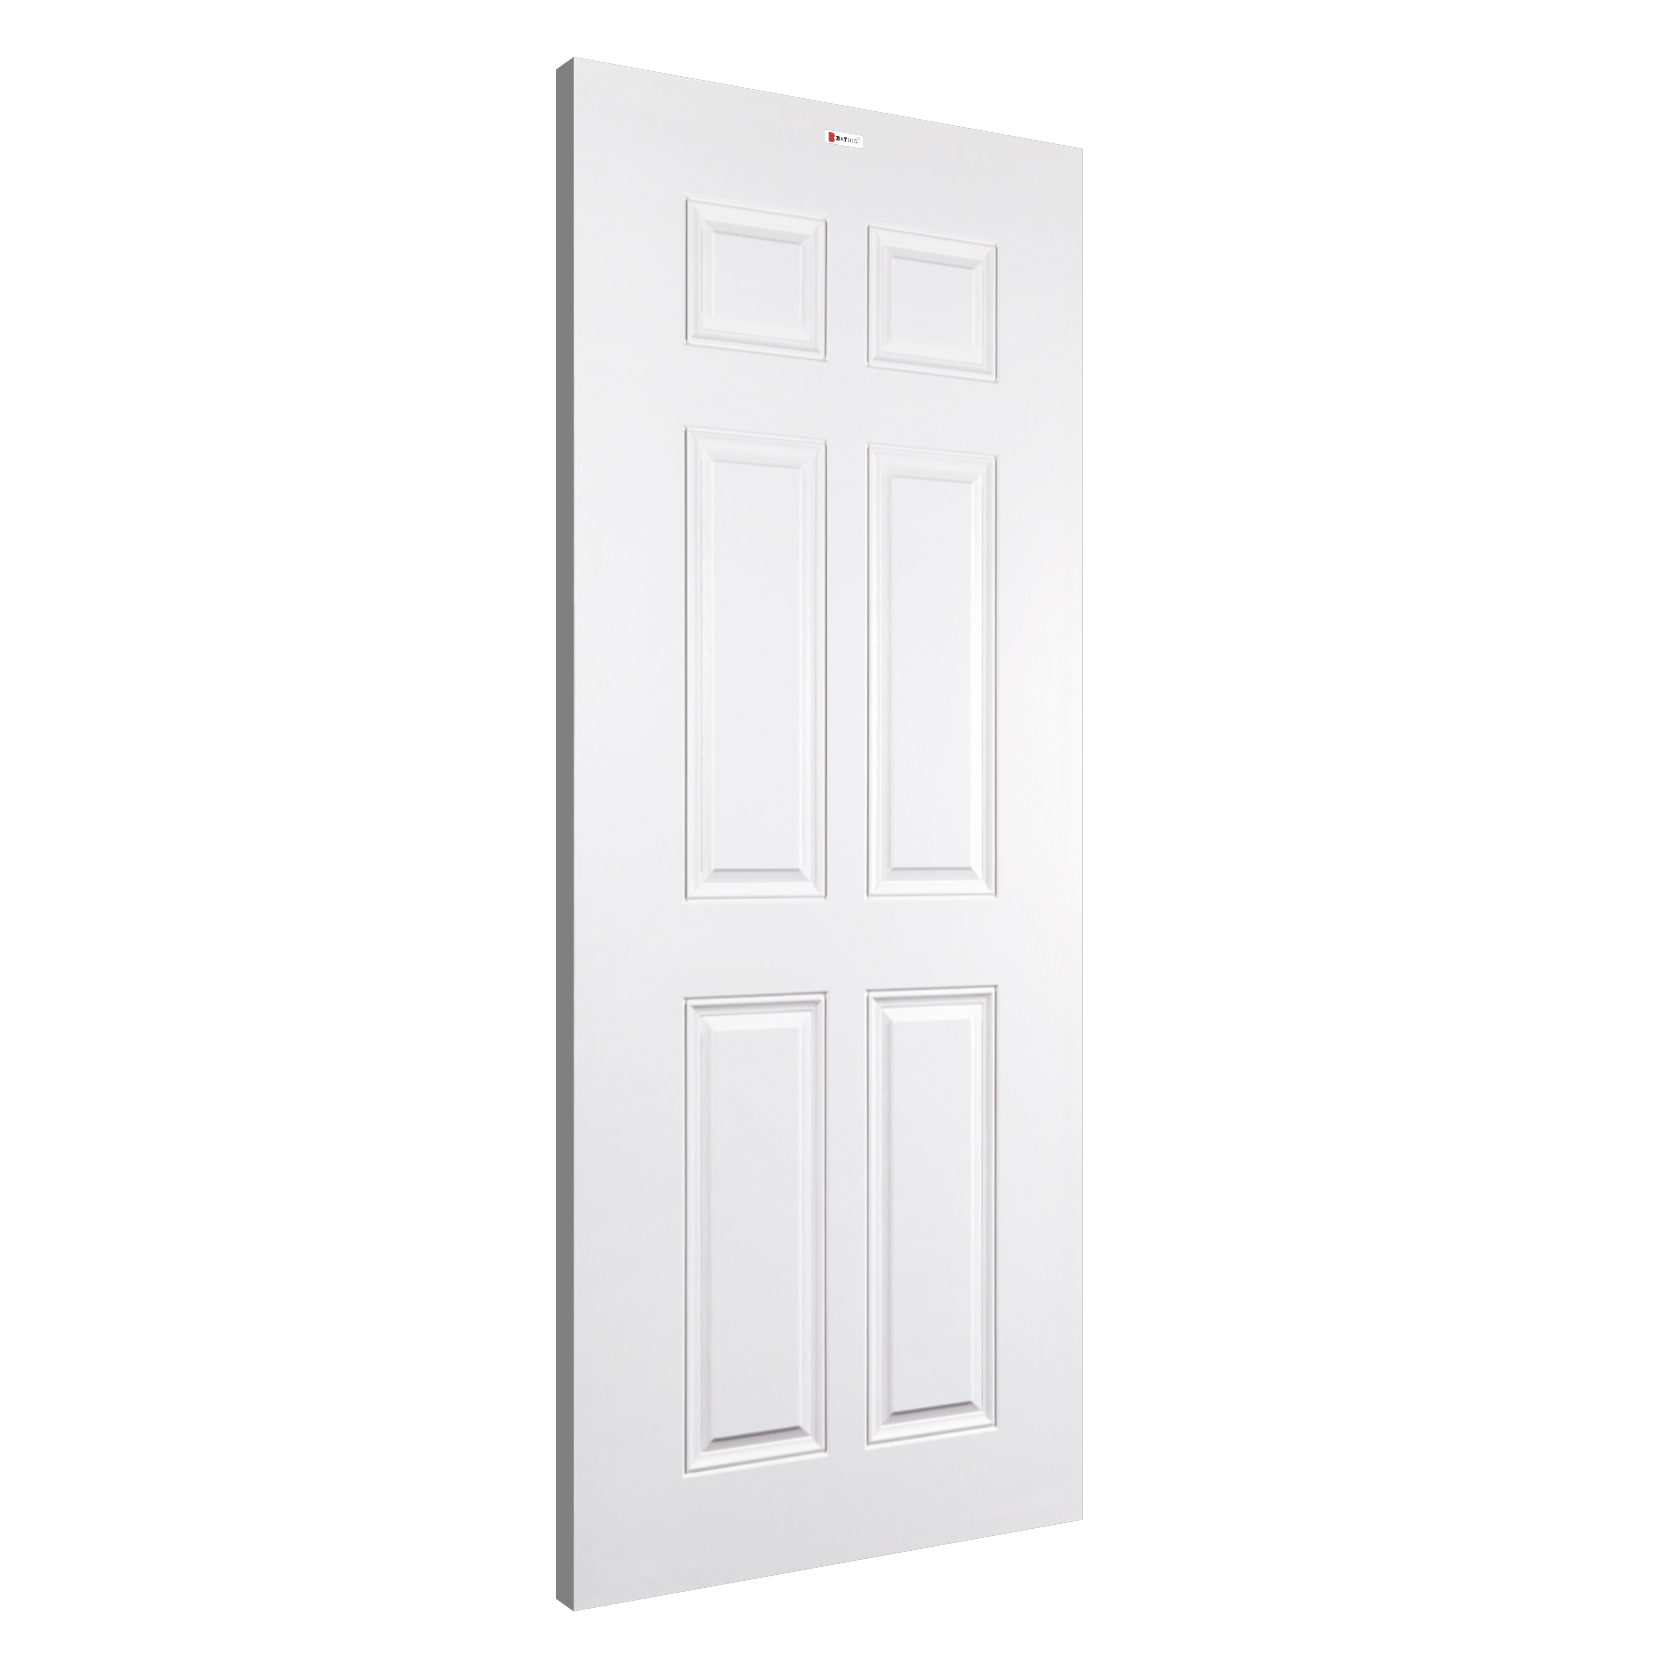 door-upvc-bathic-btu203-white-3